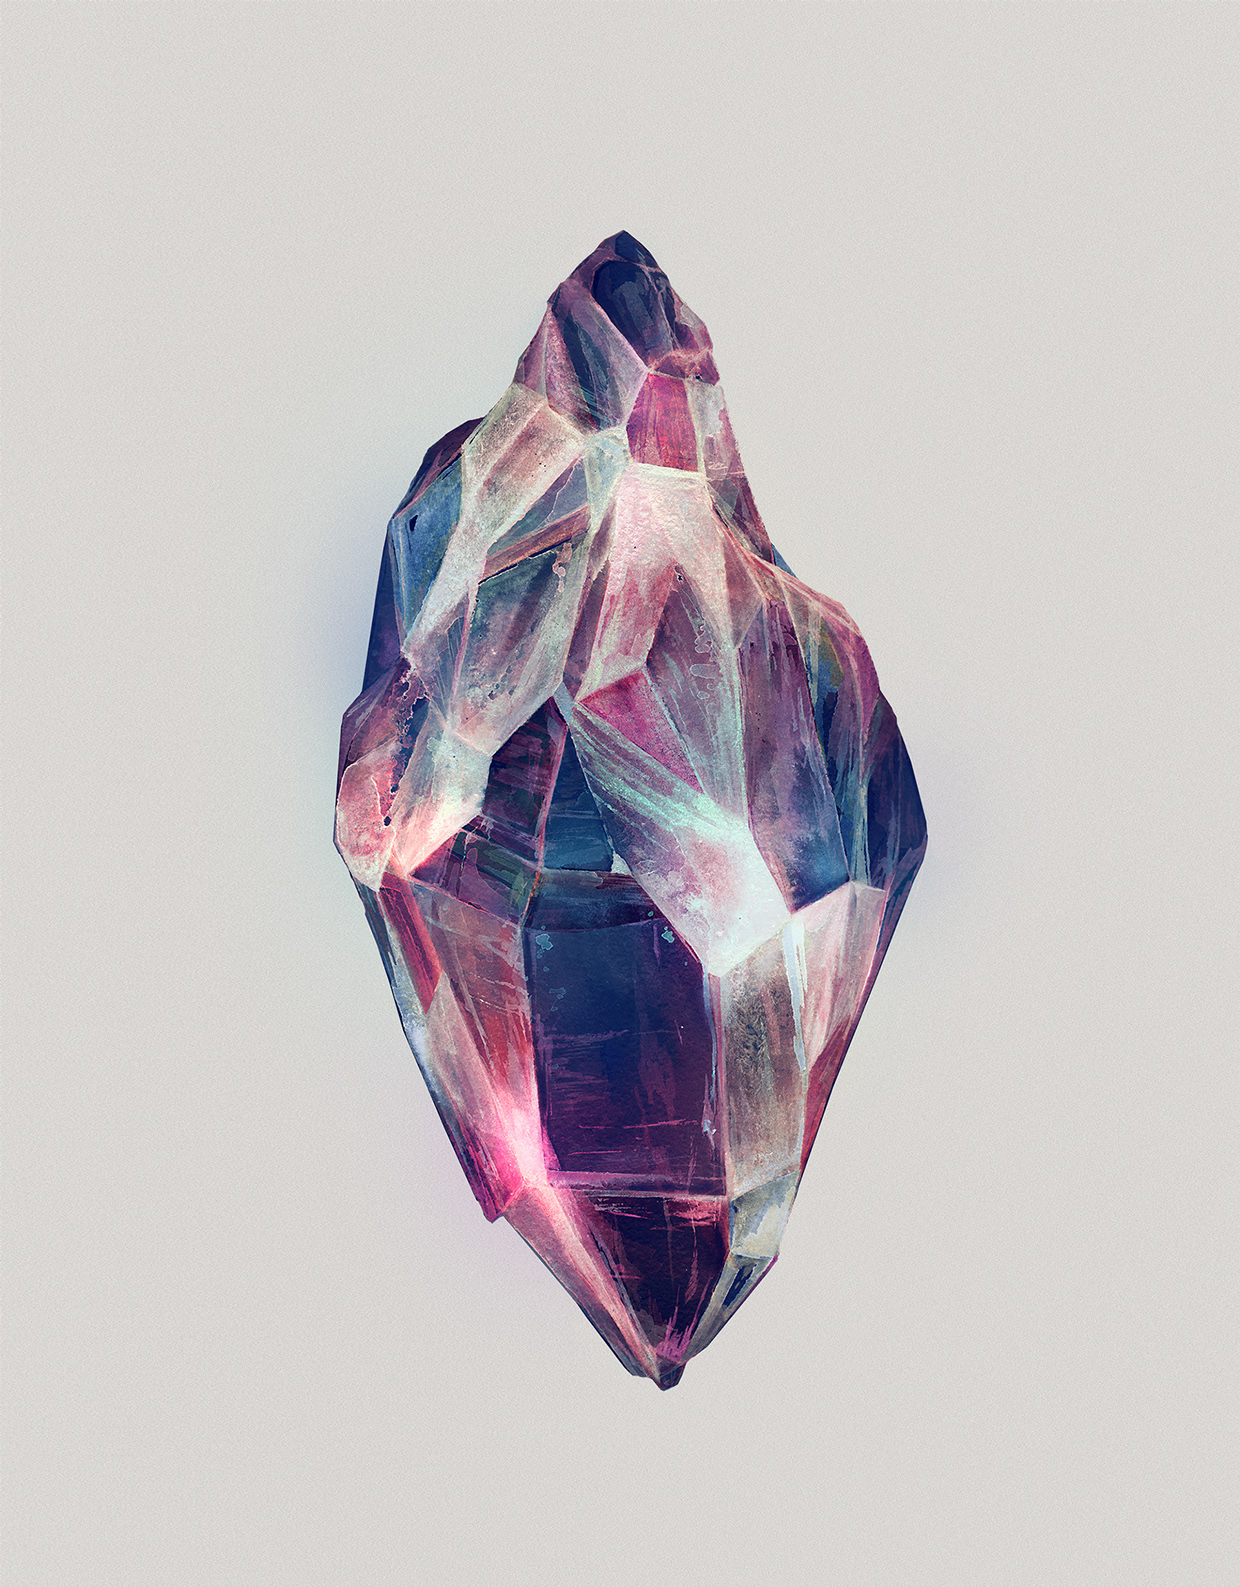 Watercolor Paintings of Crystals by Karina Eibatova (3)